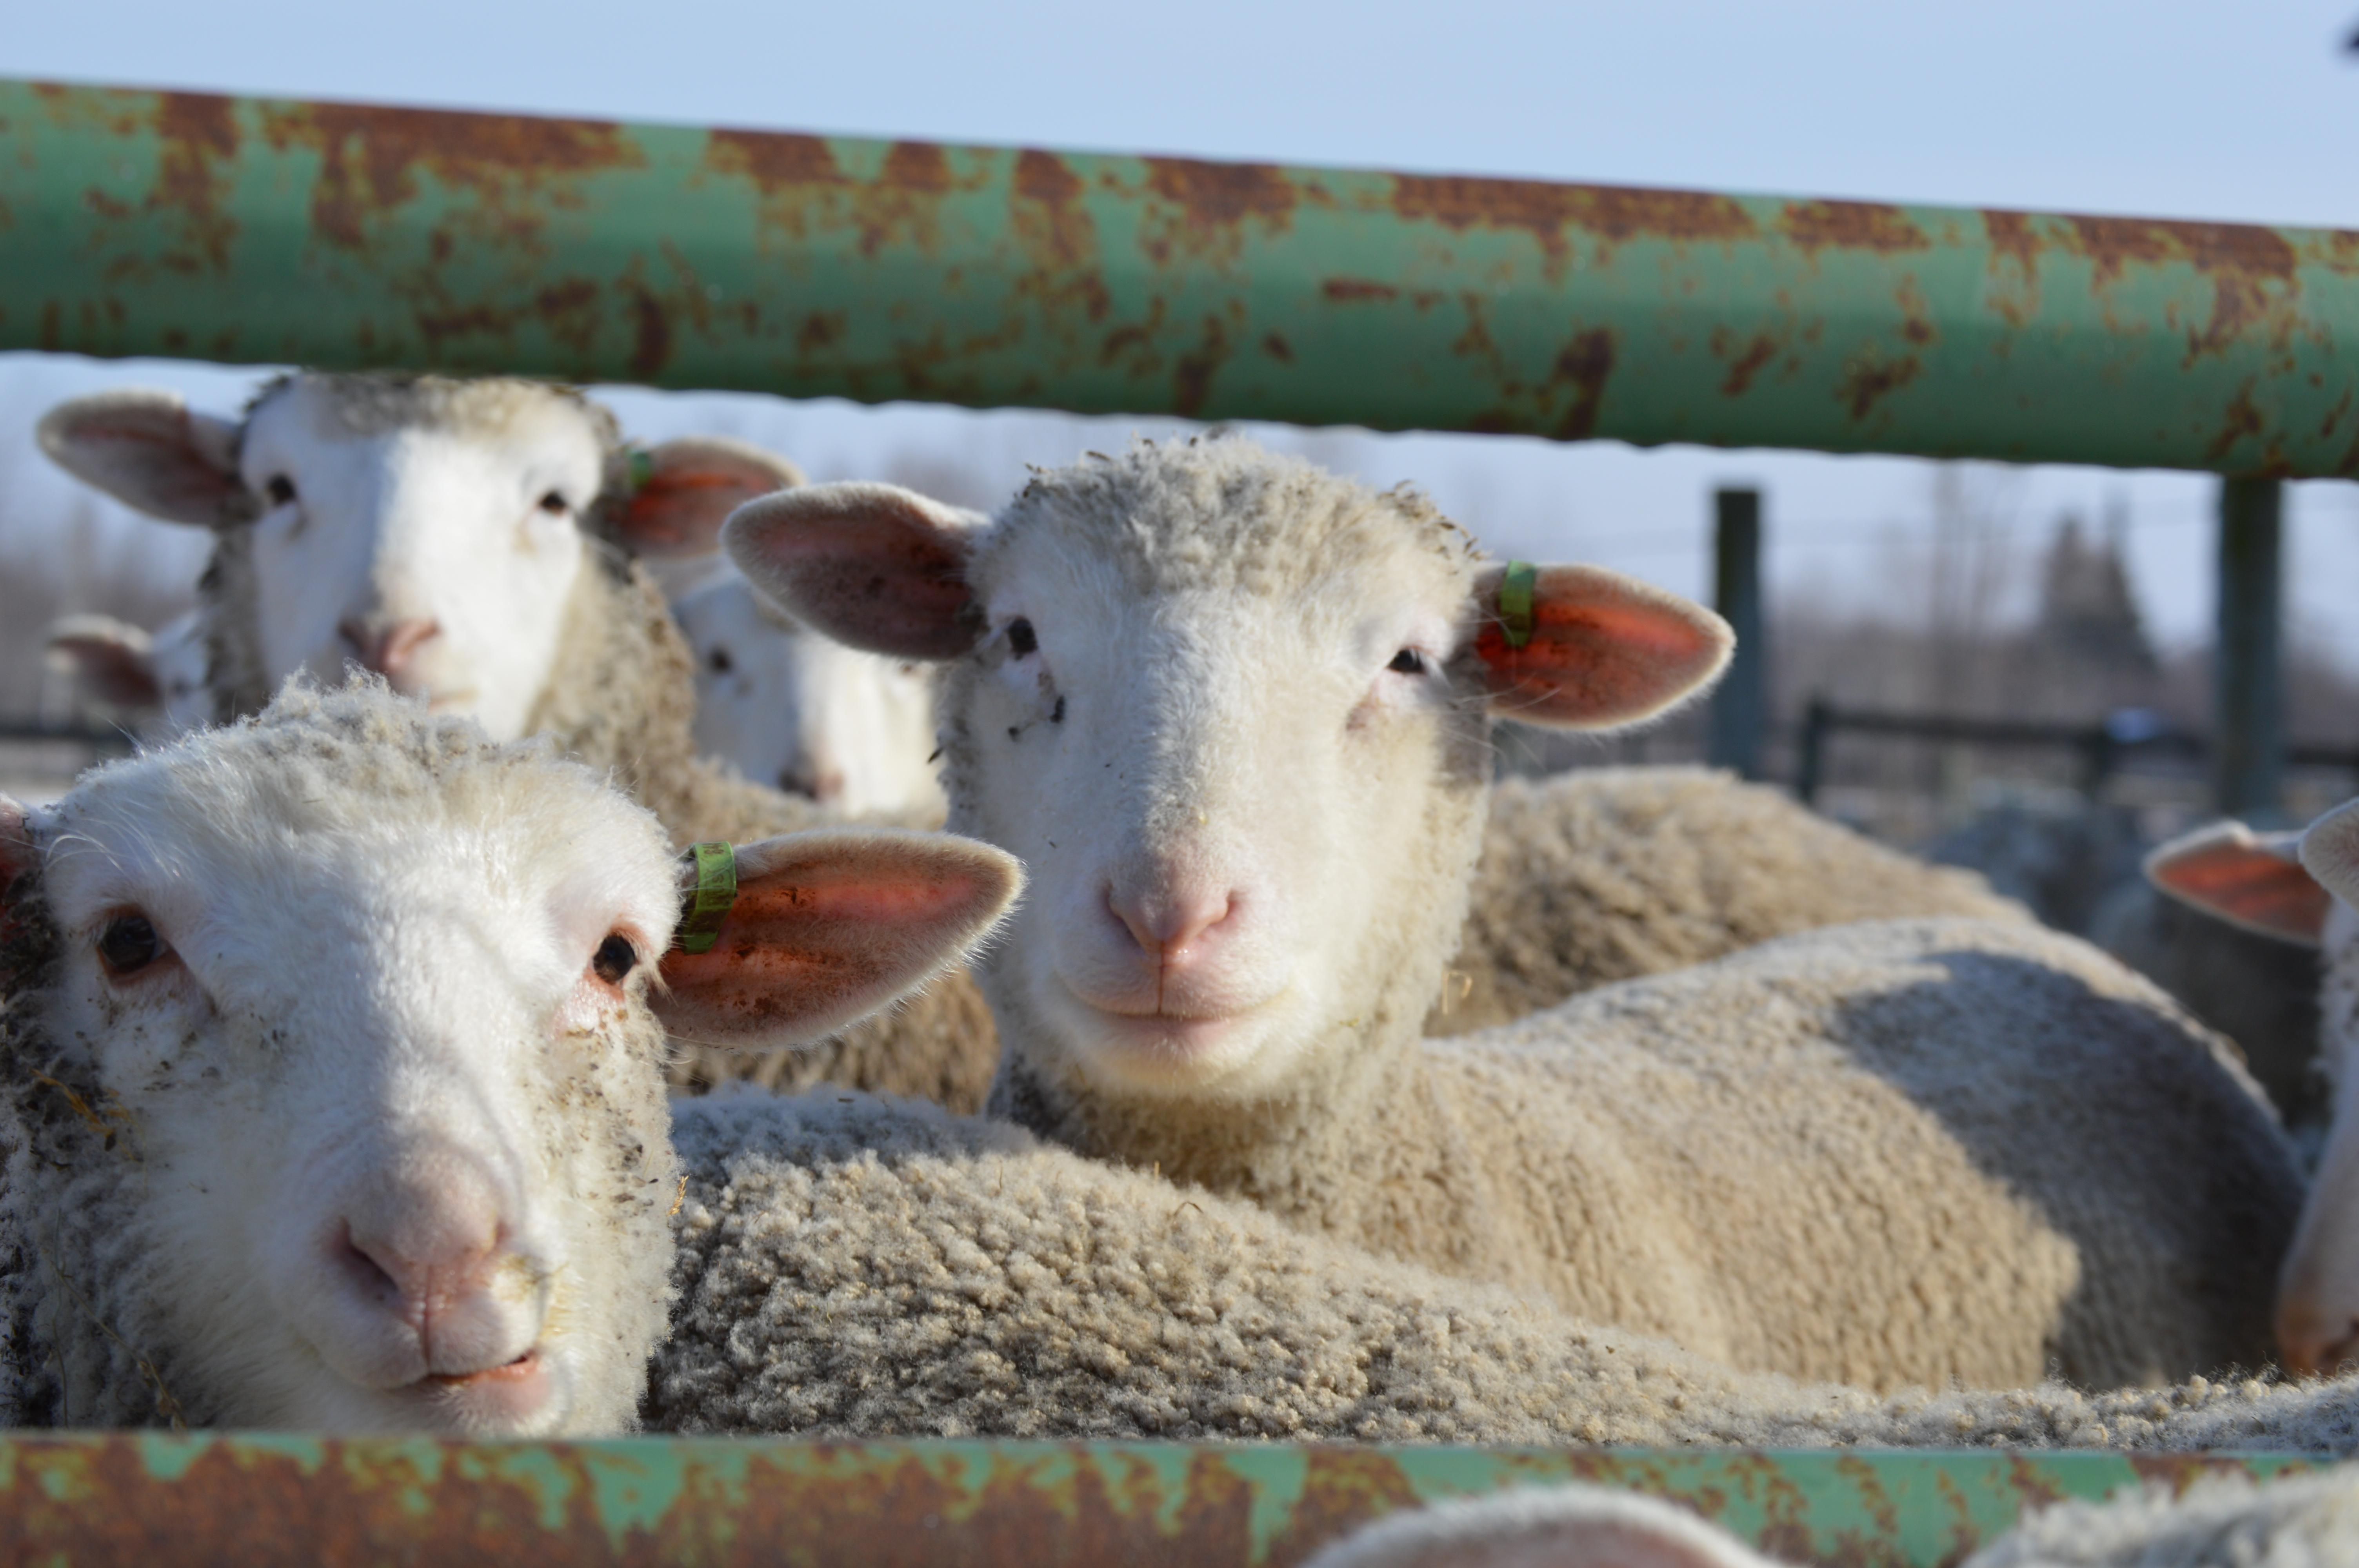 BristolLamb   Our family farms to provide food and fiber for